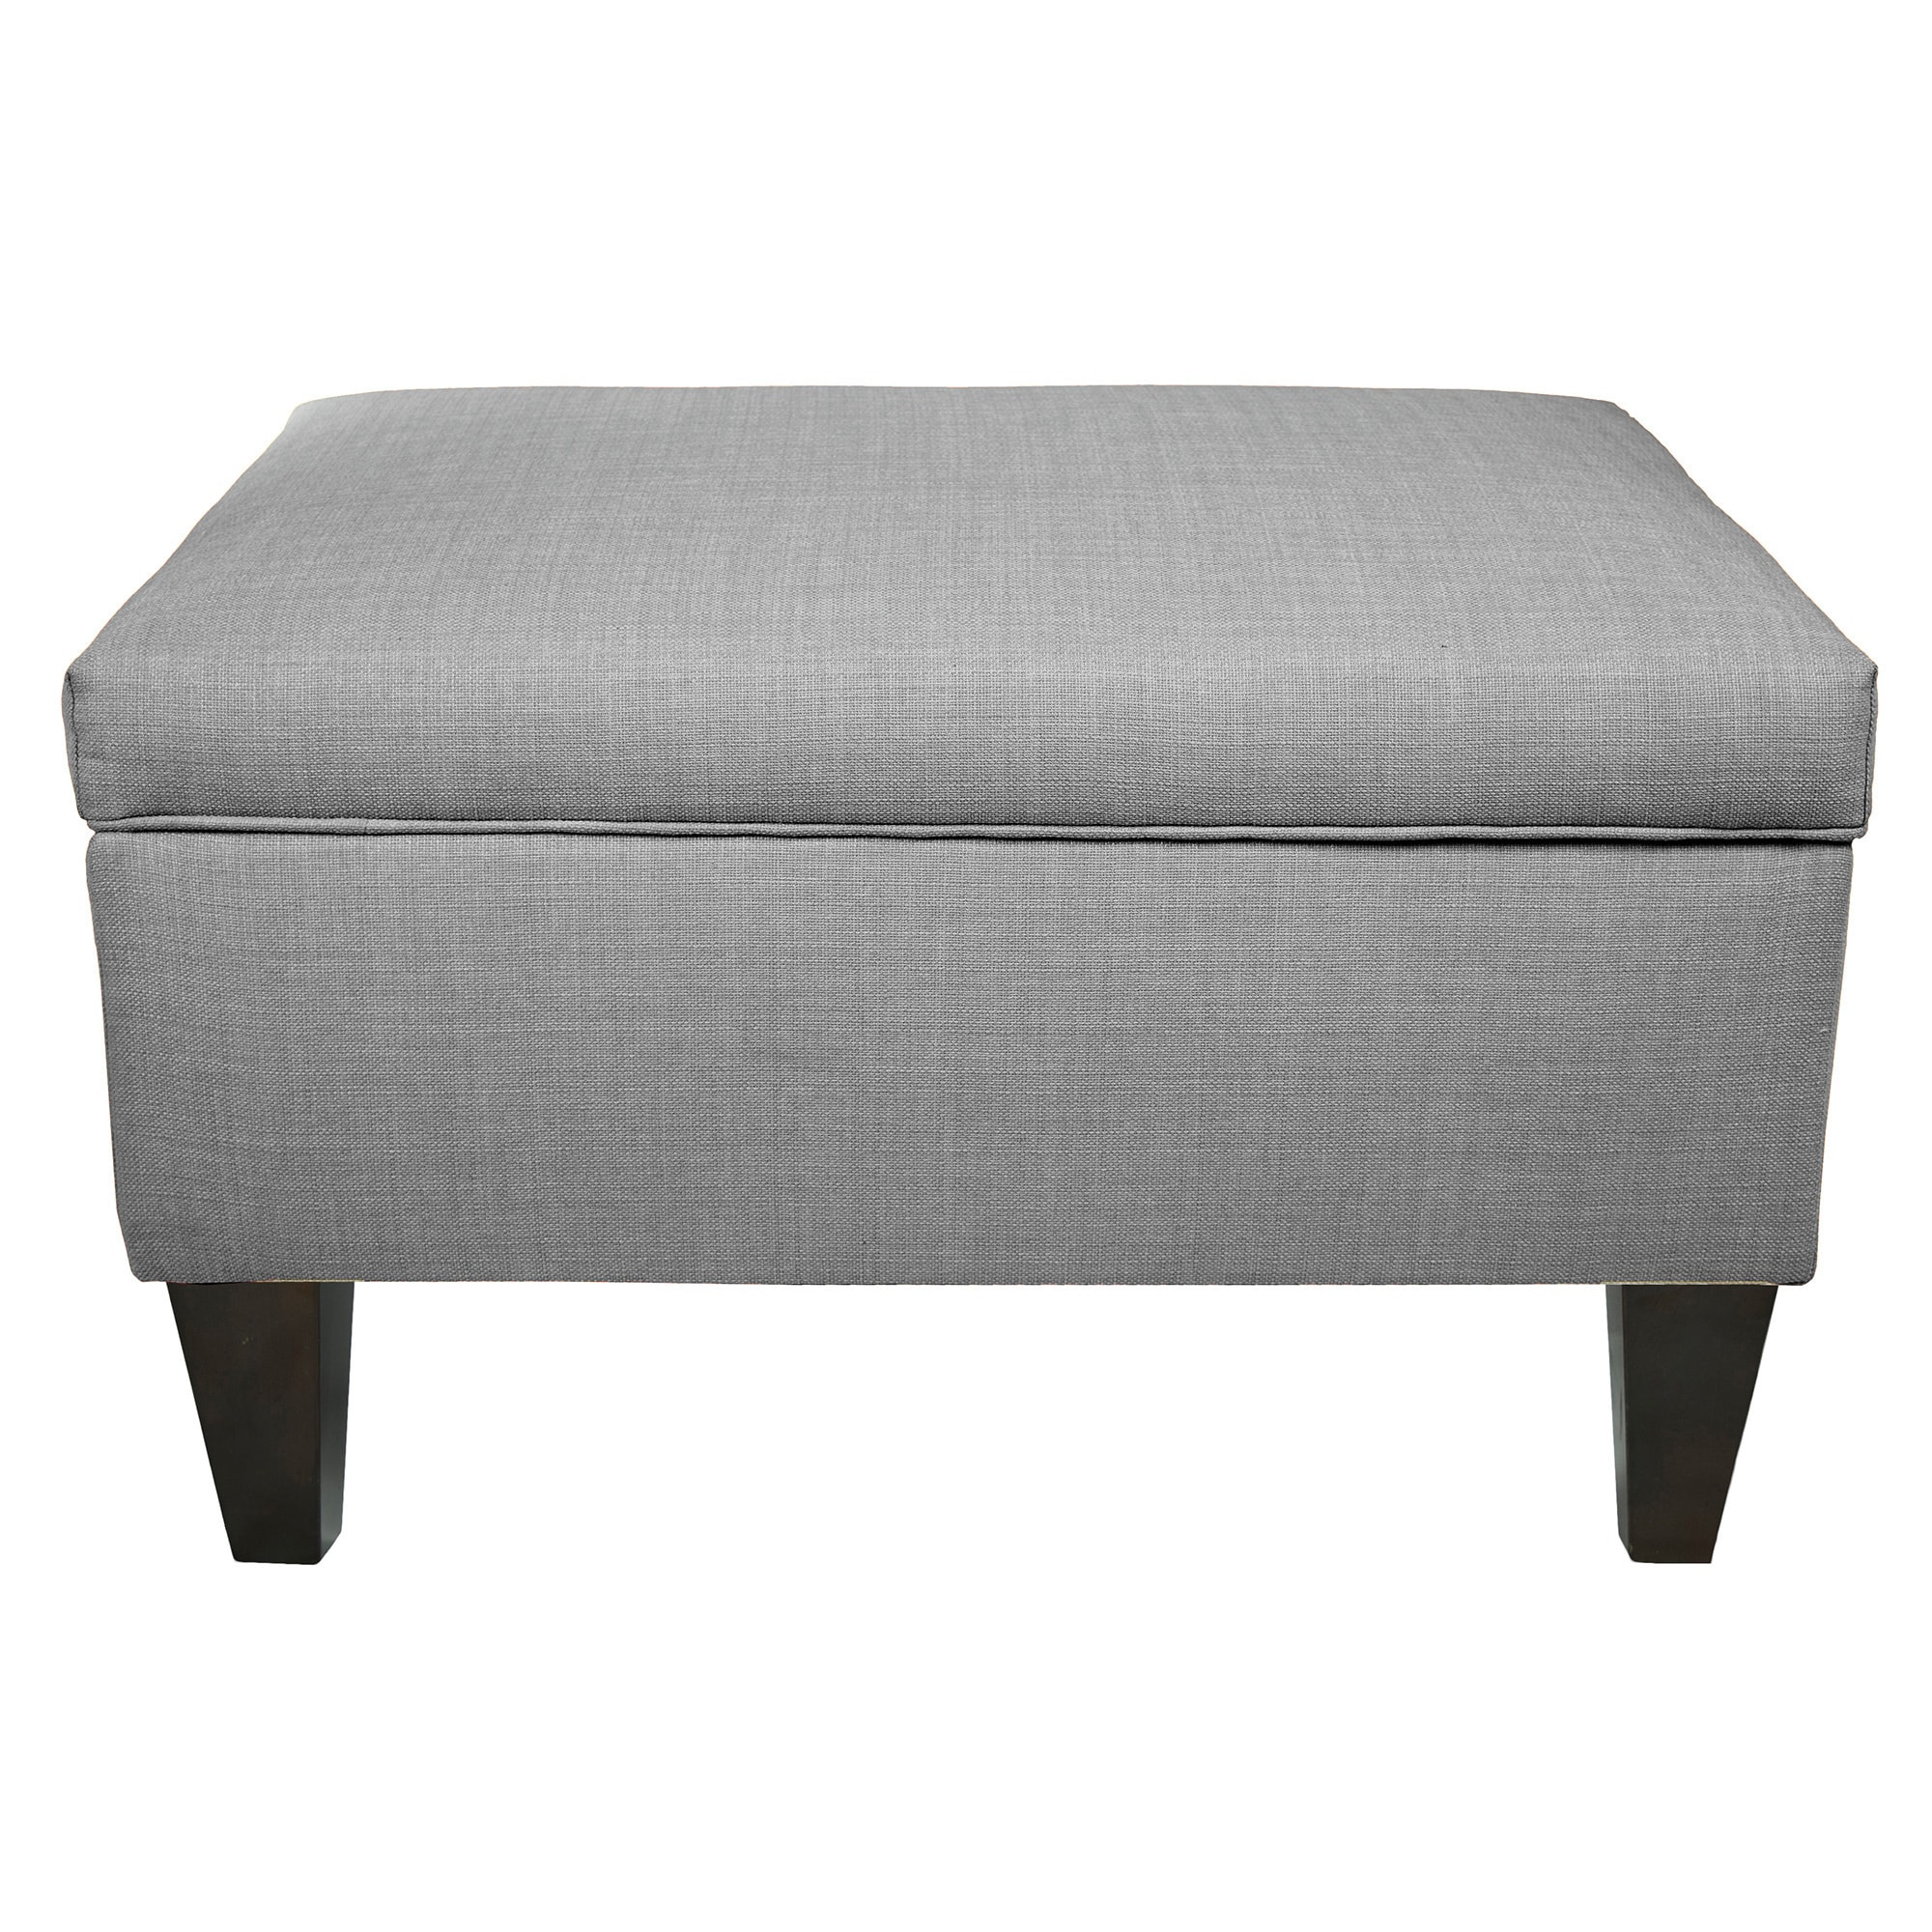 MJL Furniture BROOKLYN Wood Polyester Upholstered Storage Ottoman. Write A  Review